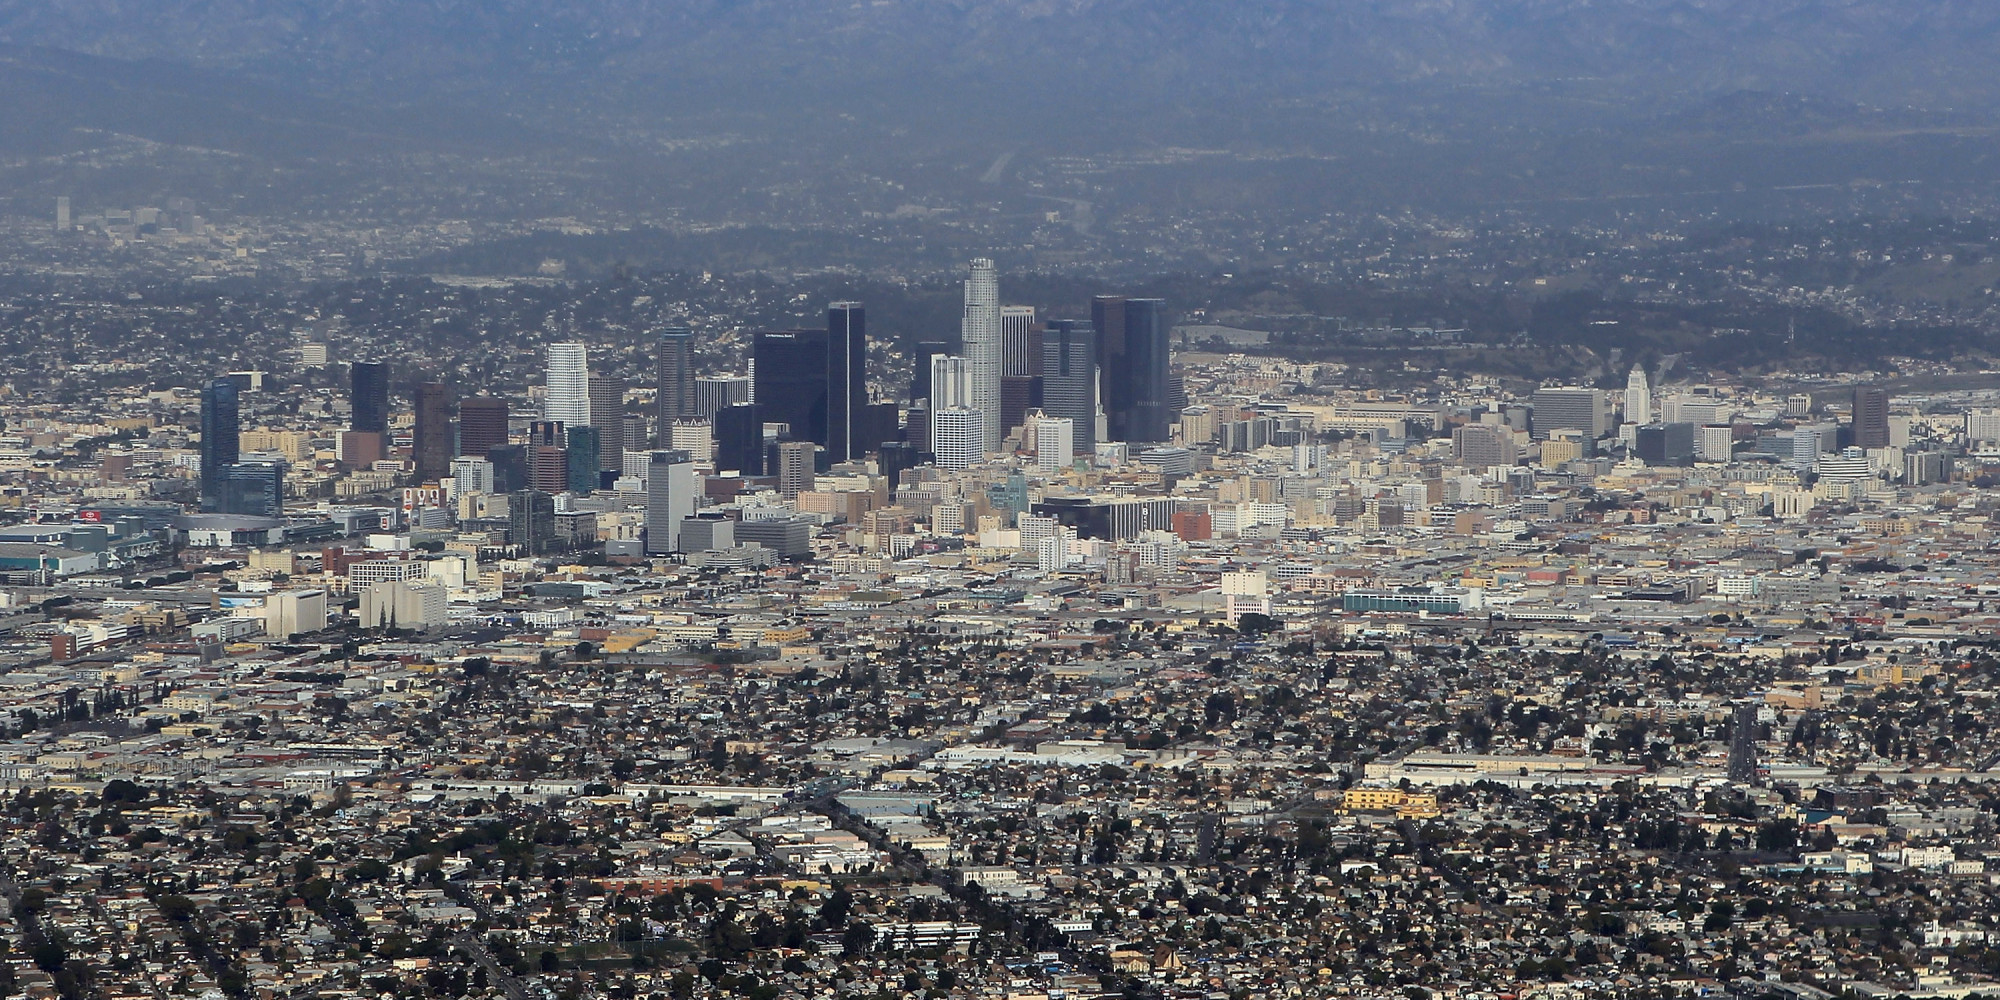 Los Angeles Residents Wake Up To Strong Earthquake